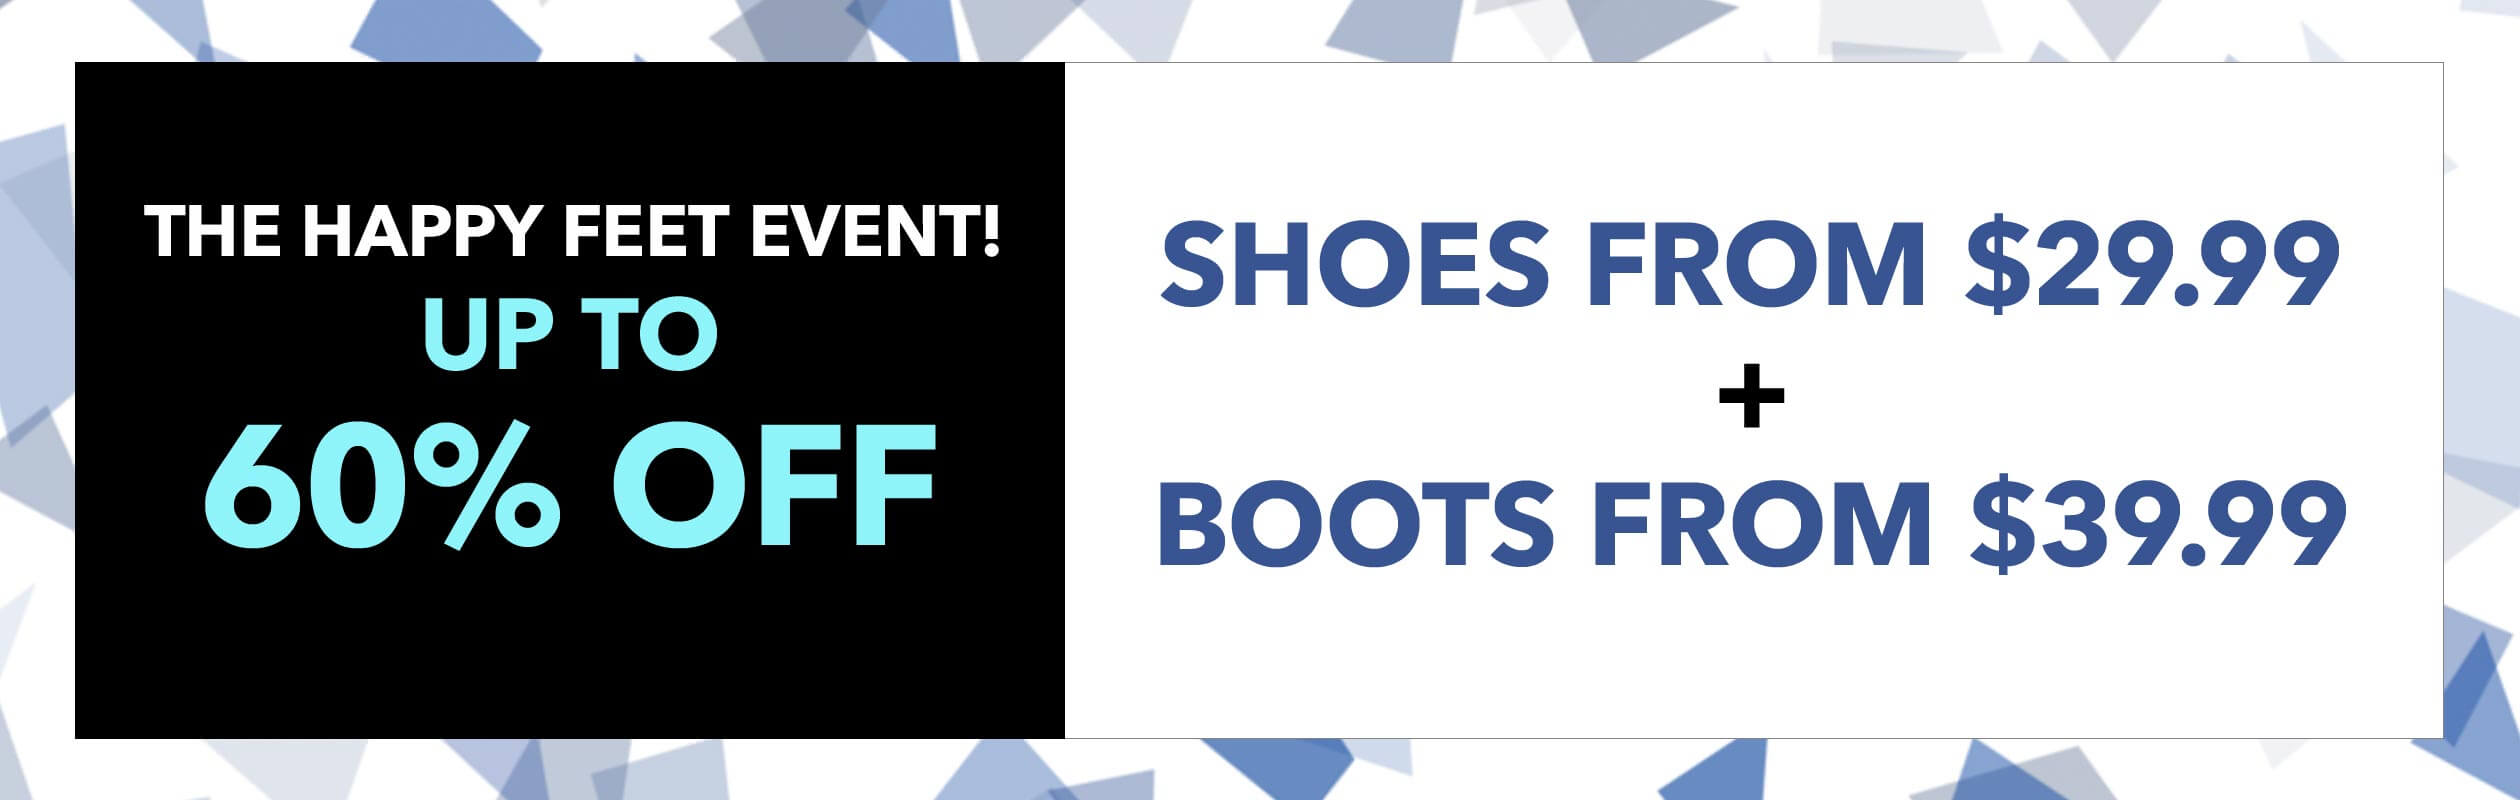 HAPPY FEET EVENT! UP TO 60% OFF FALL SHOES & BOOTS! - SHOP NOW